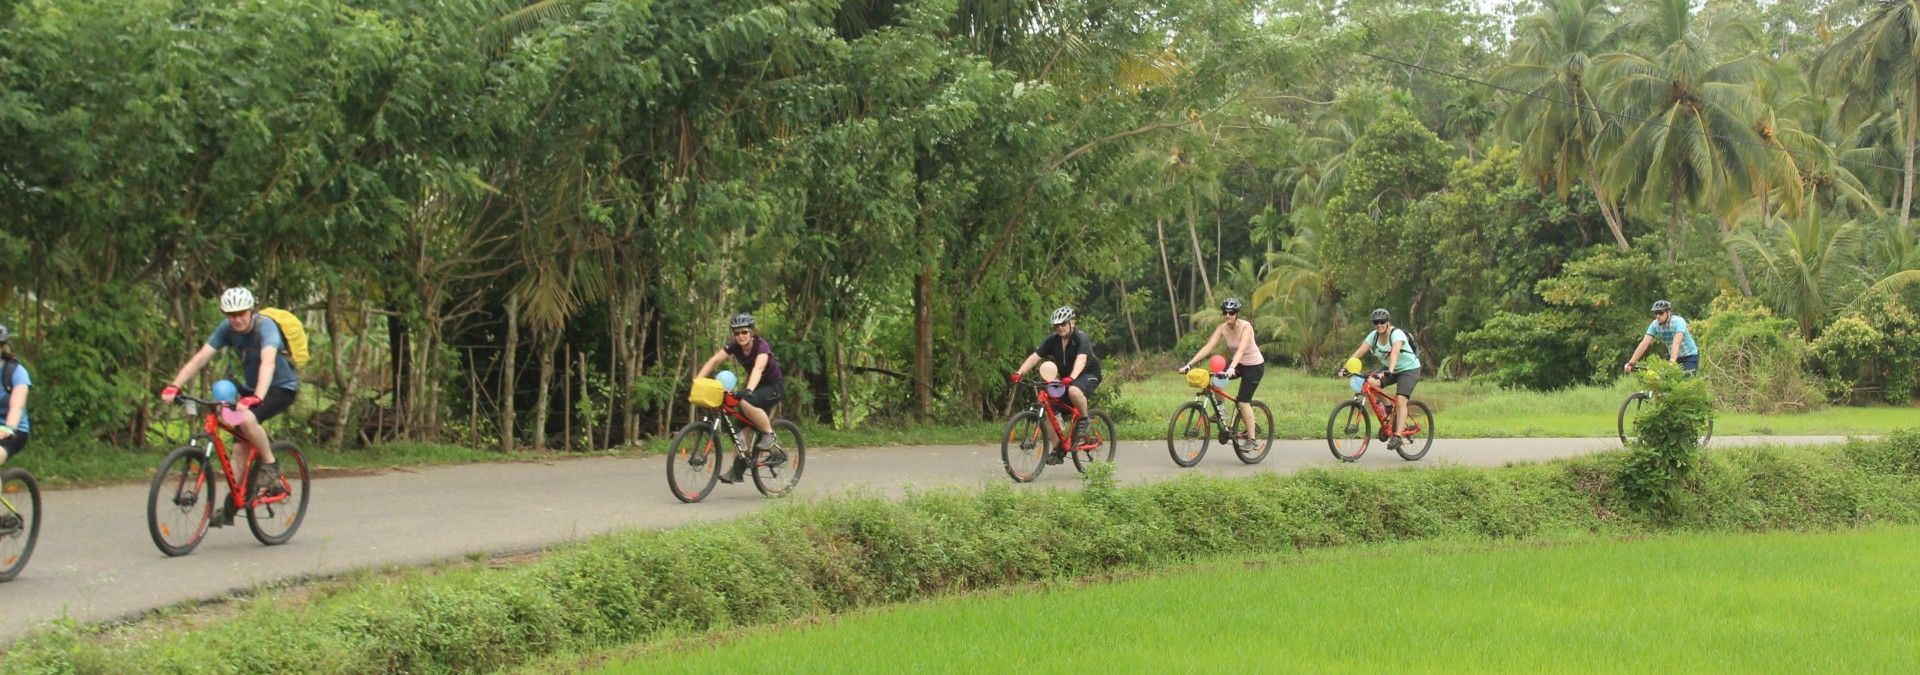 Passing rice paddies and grasslands